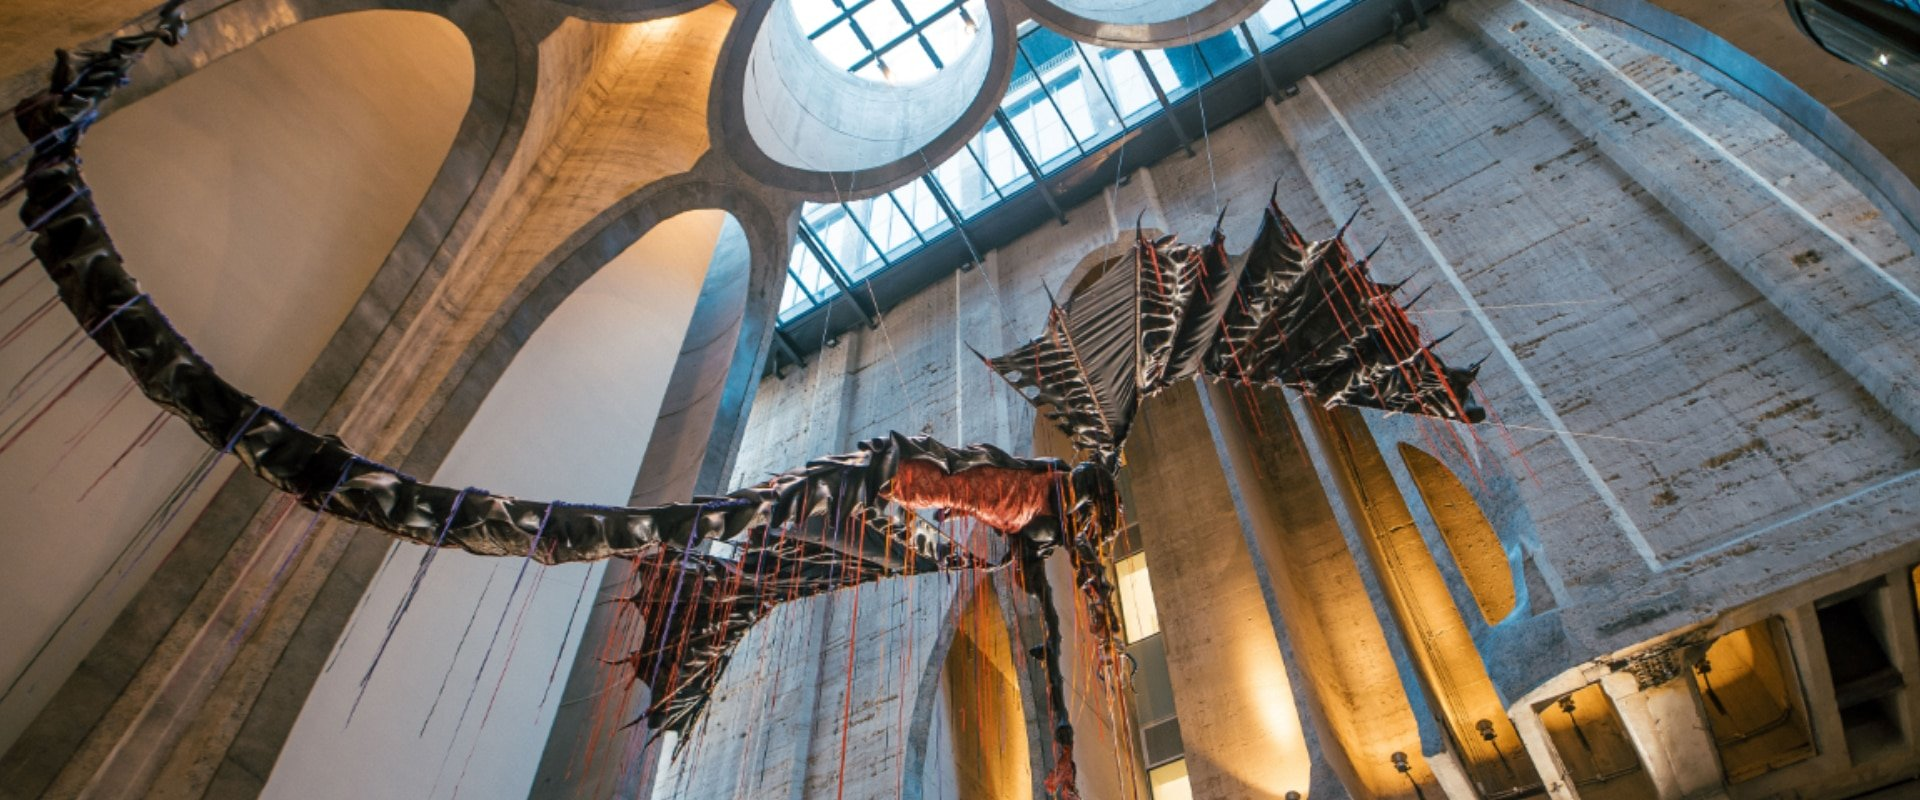 Visit the exciting museum of contemporary African art